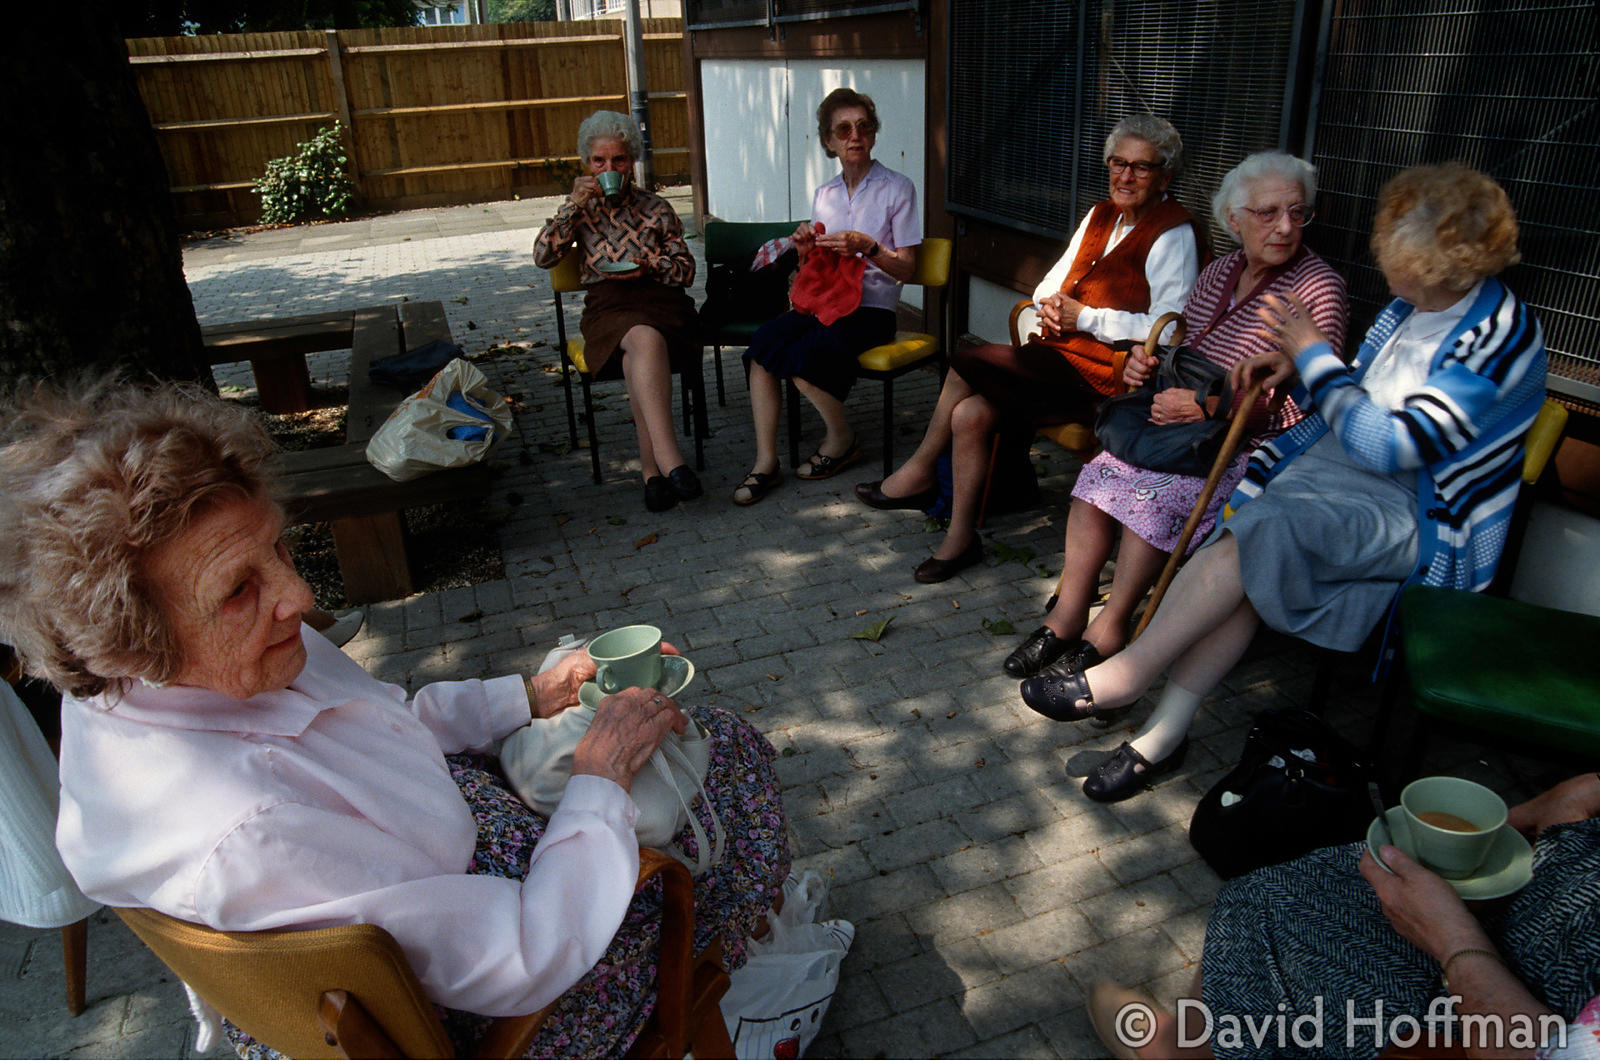 Elderly women chatting outside a council run day centre in Hackney.